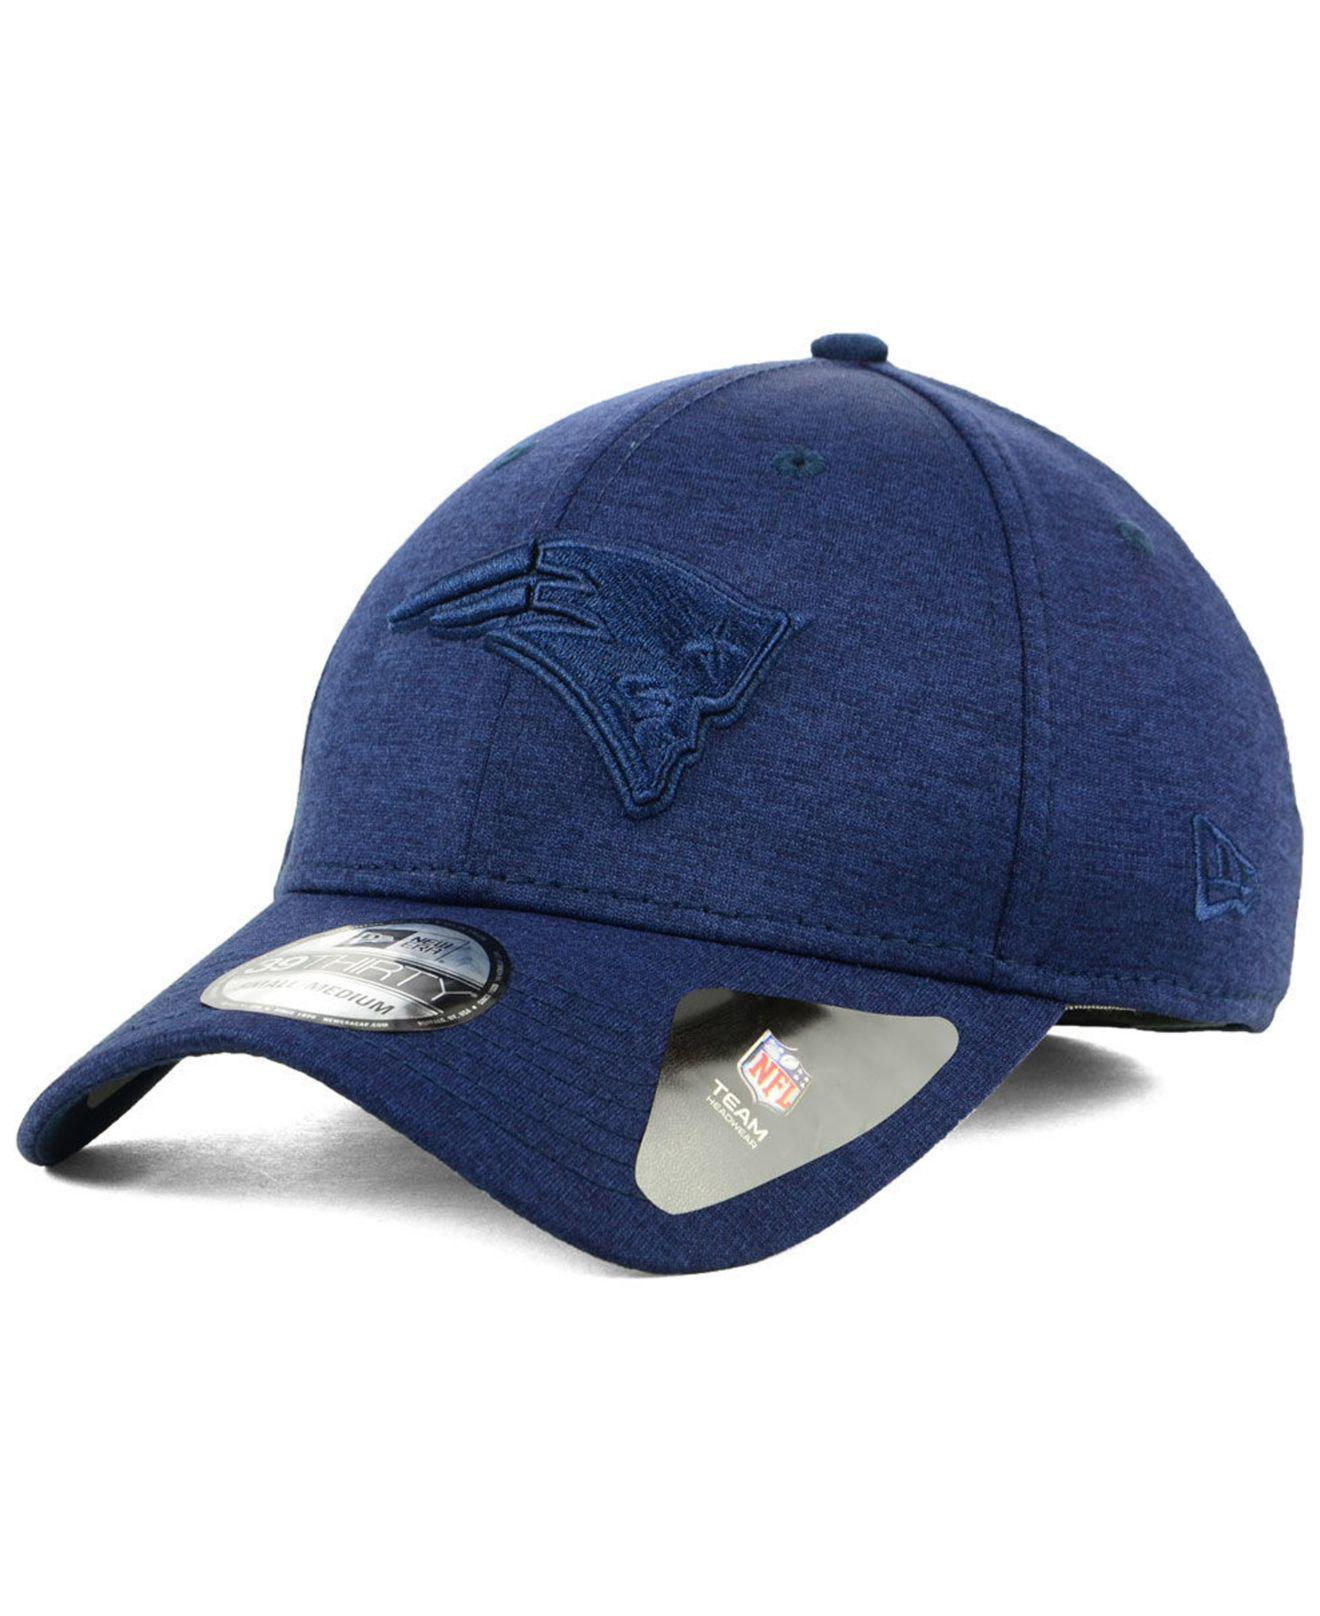 Lyst - KTZ New England Patriots Tonal Heat 39thirty Cap in Blue for Men 4665ac979